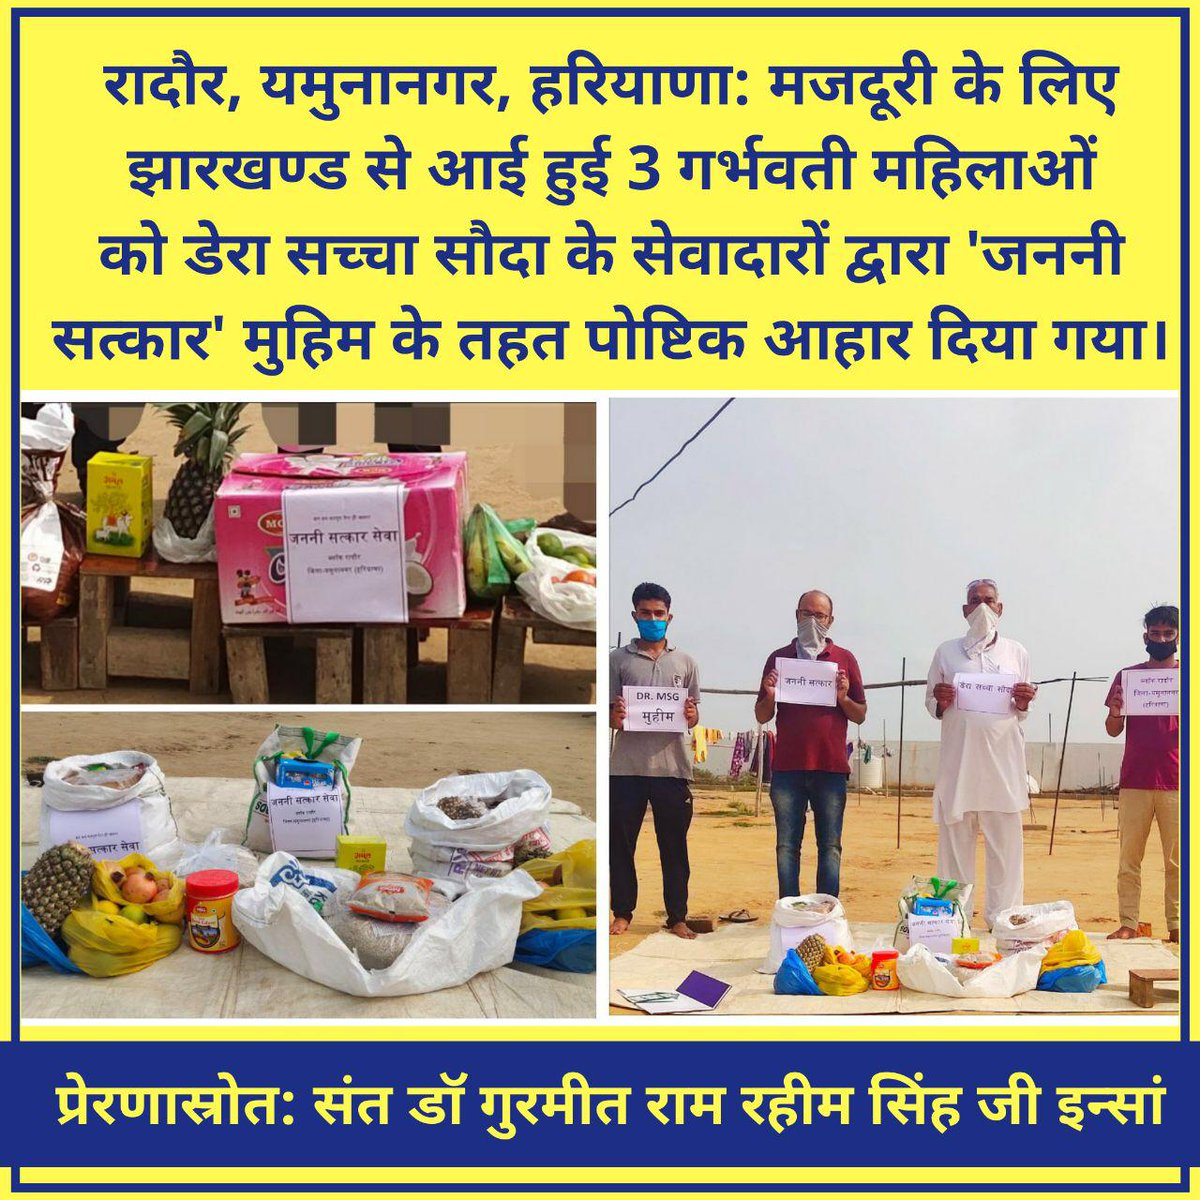 Nutritious food is the bestest food for a pregnant woman. Must provide  nutrition to them for a healthy baby #SelflessService by @derasachasauda with the inspiration of Saint @Gurmeetramrahim ji.<br>http://pic.twitter.com/JSCmIfxwUE